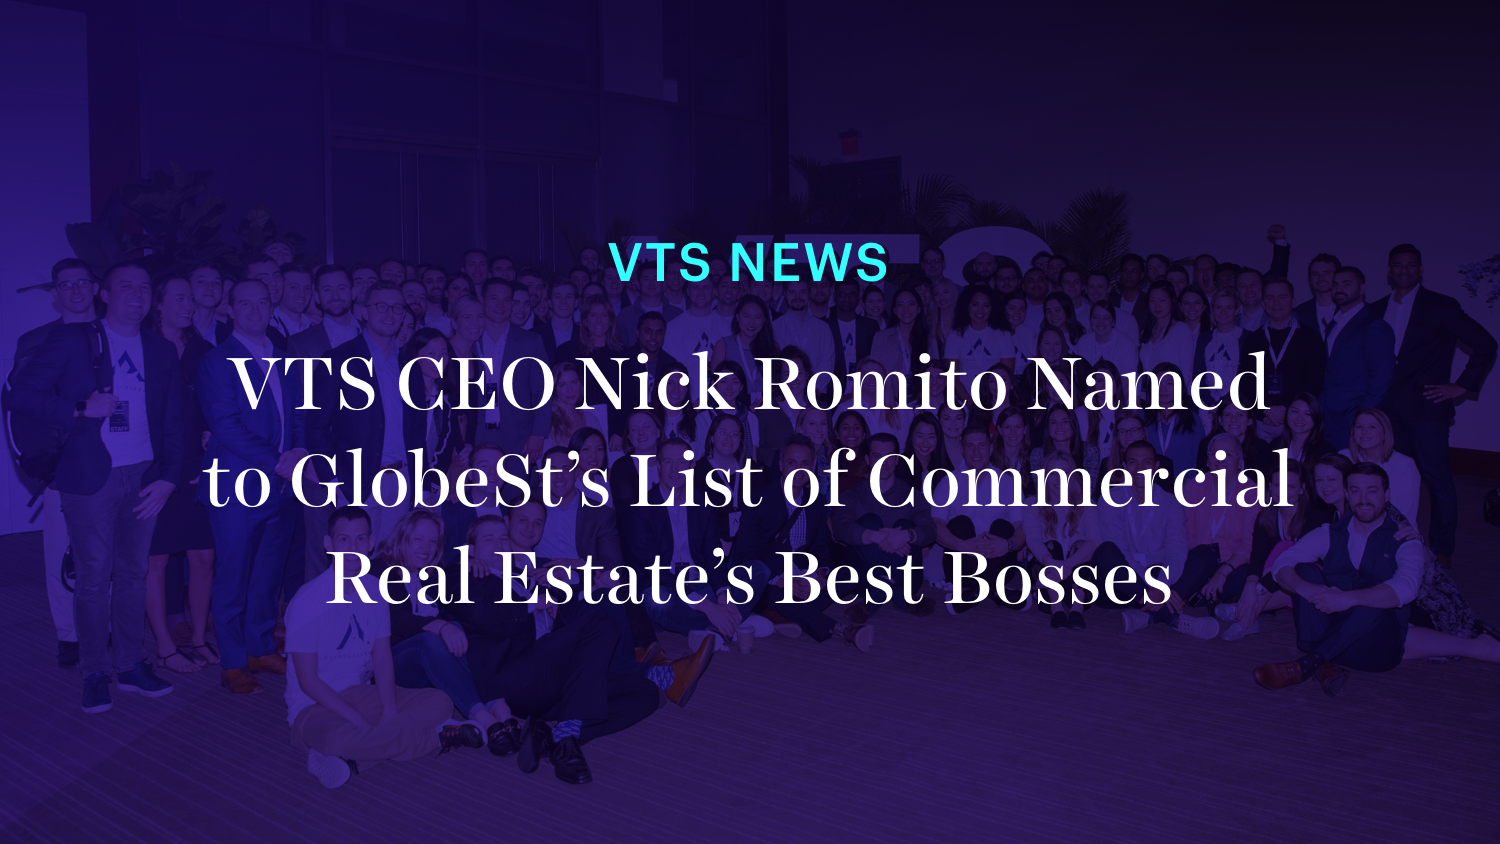 VTS CEO Nick Romito Named to GlobeSt's List of Commercial Real Estate's Best Bosses